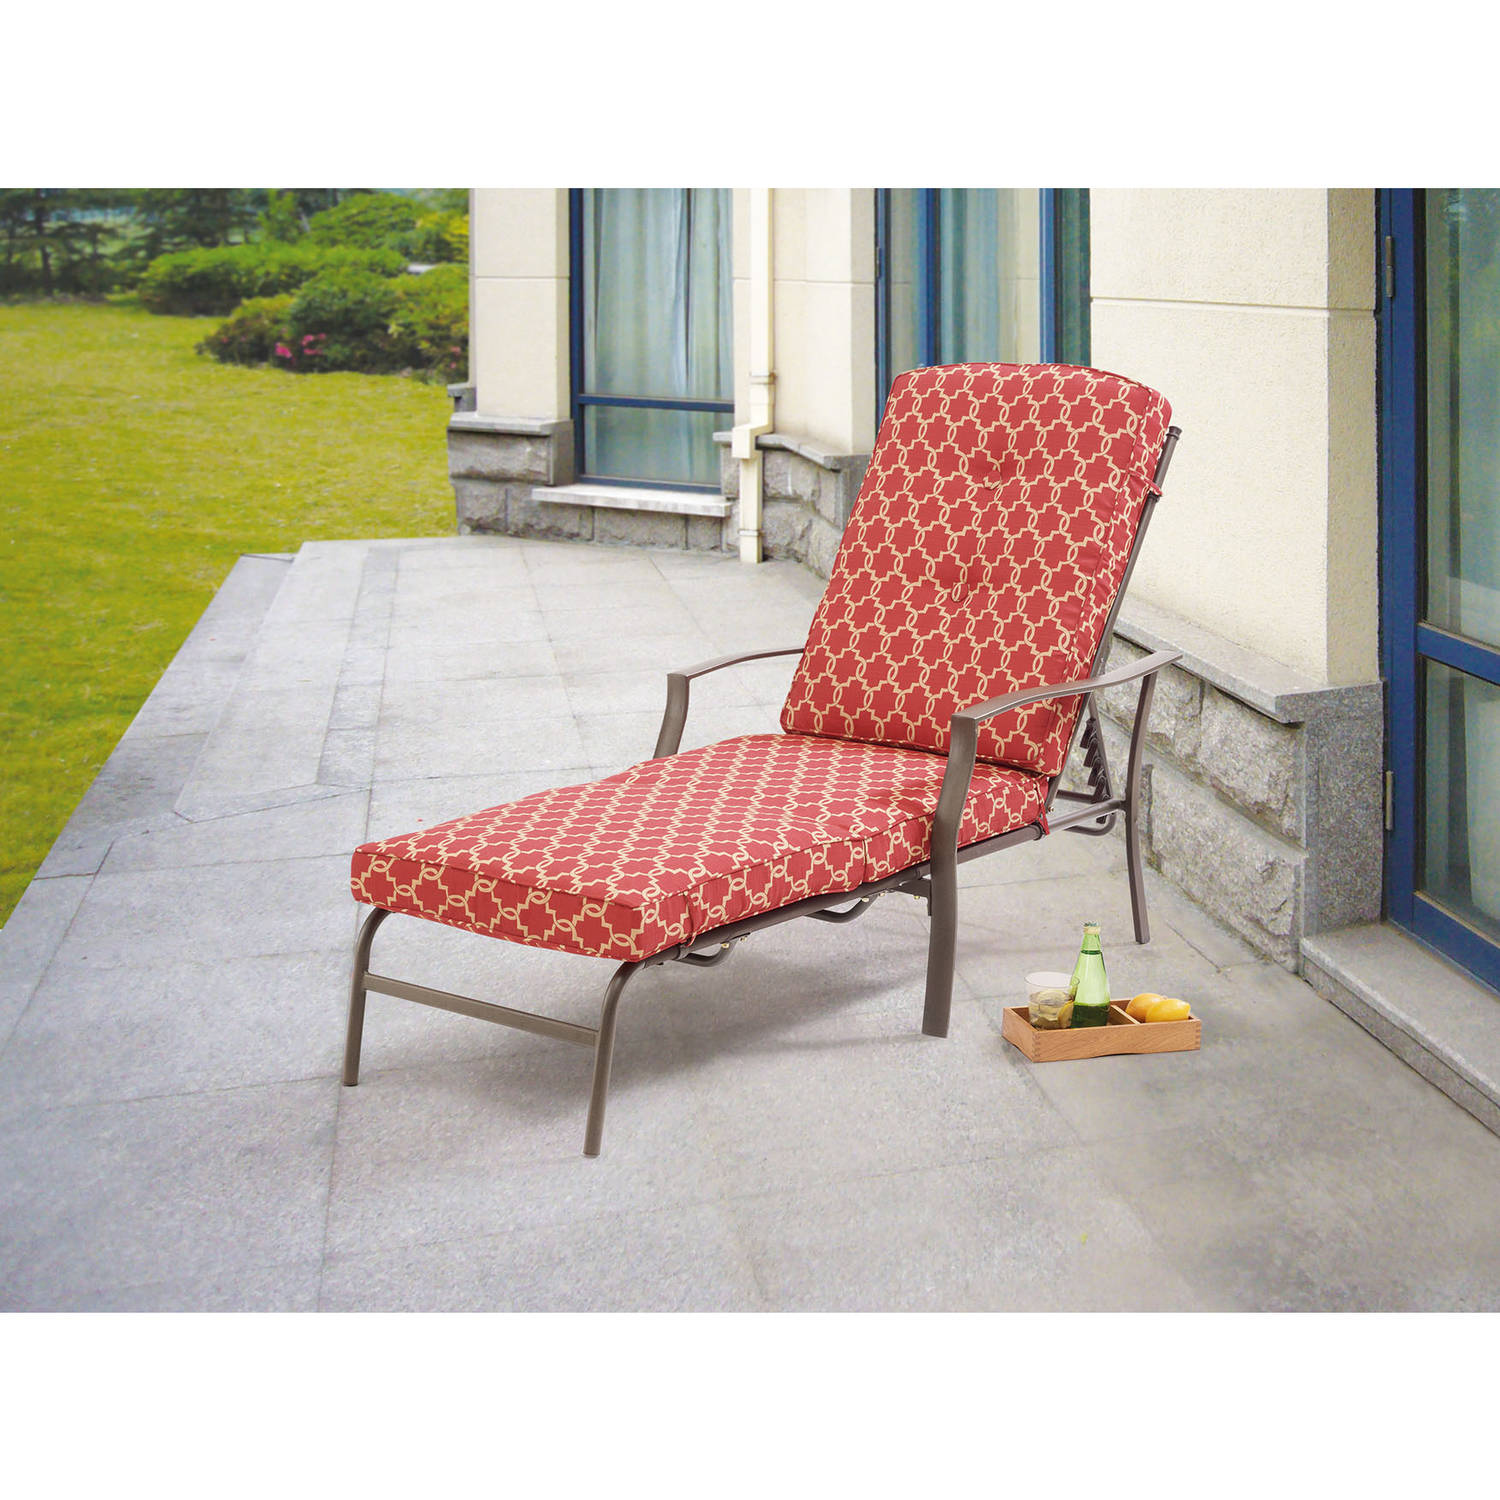 Mainstays Ashwood Heights Chaise Lounge  sc 1 st  Walmart : chaise lounge walmart - Sectionals, Sofas & Couches